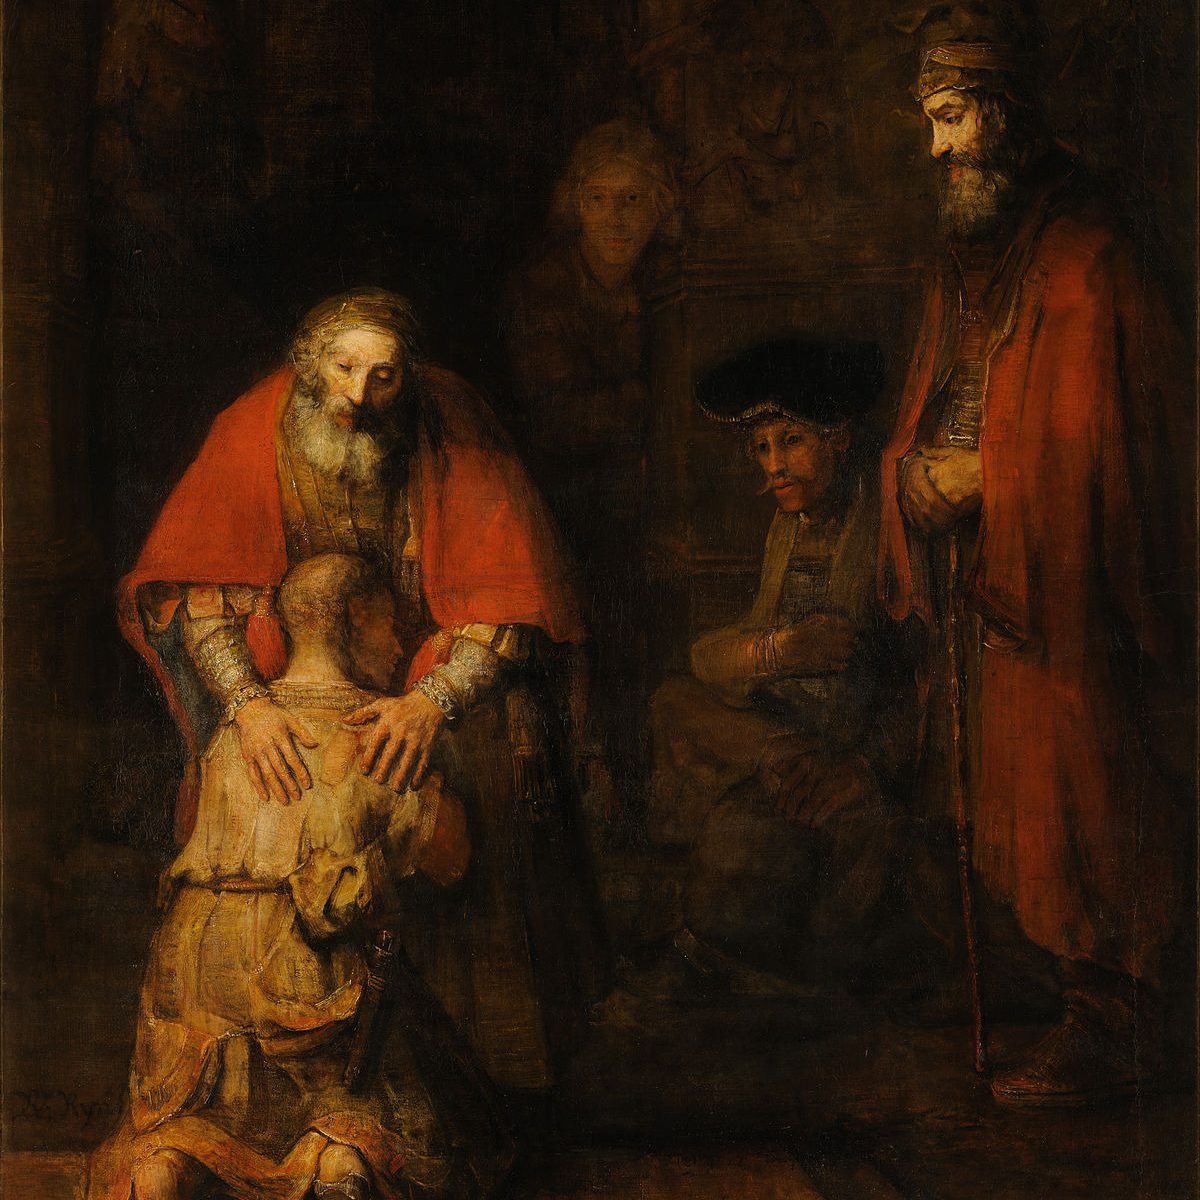 Atonement: the Return of the Prodigal Son (Rembrandt)